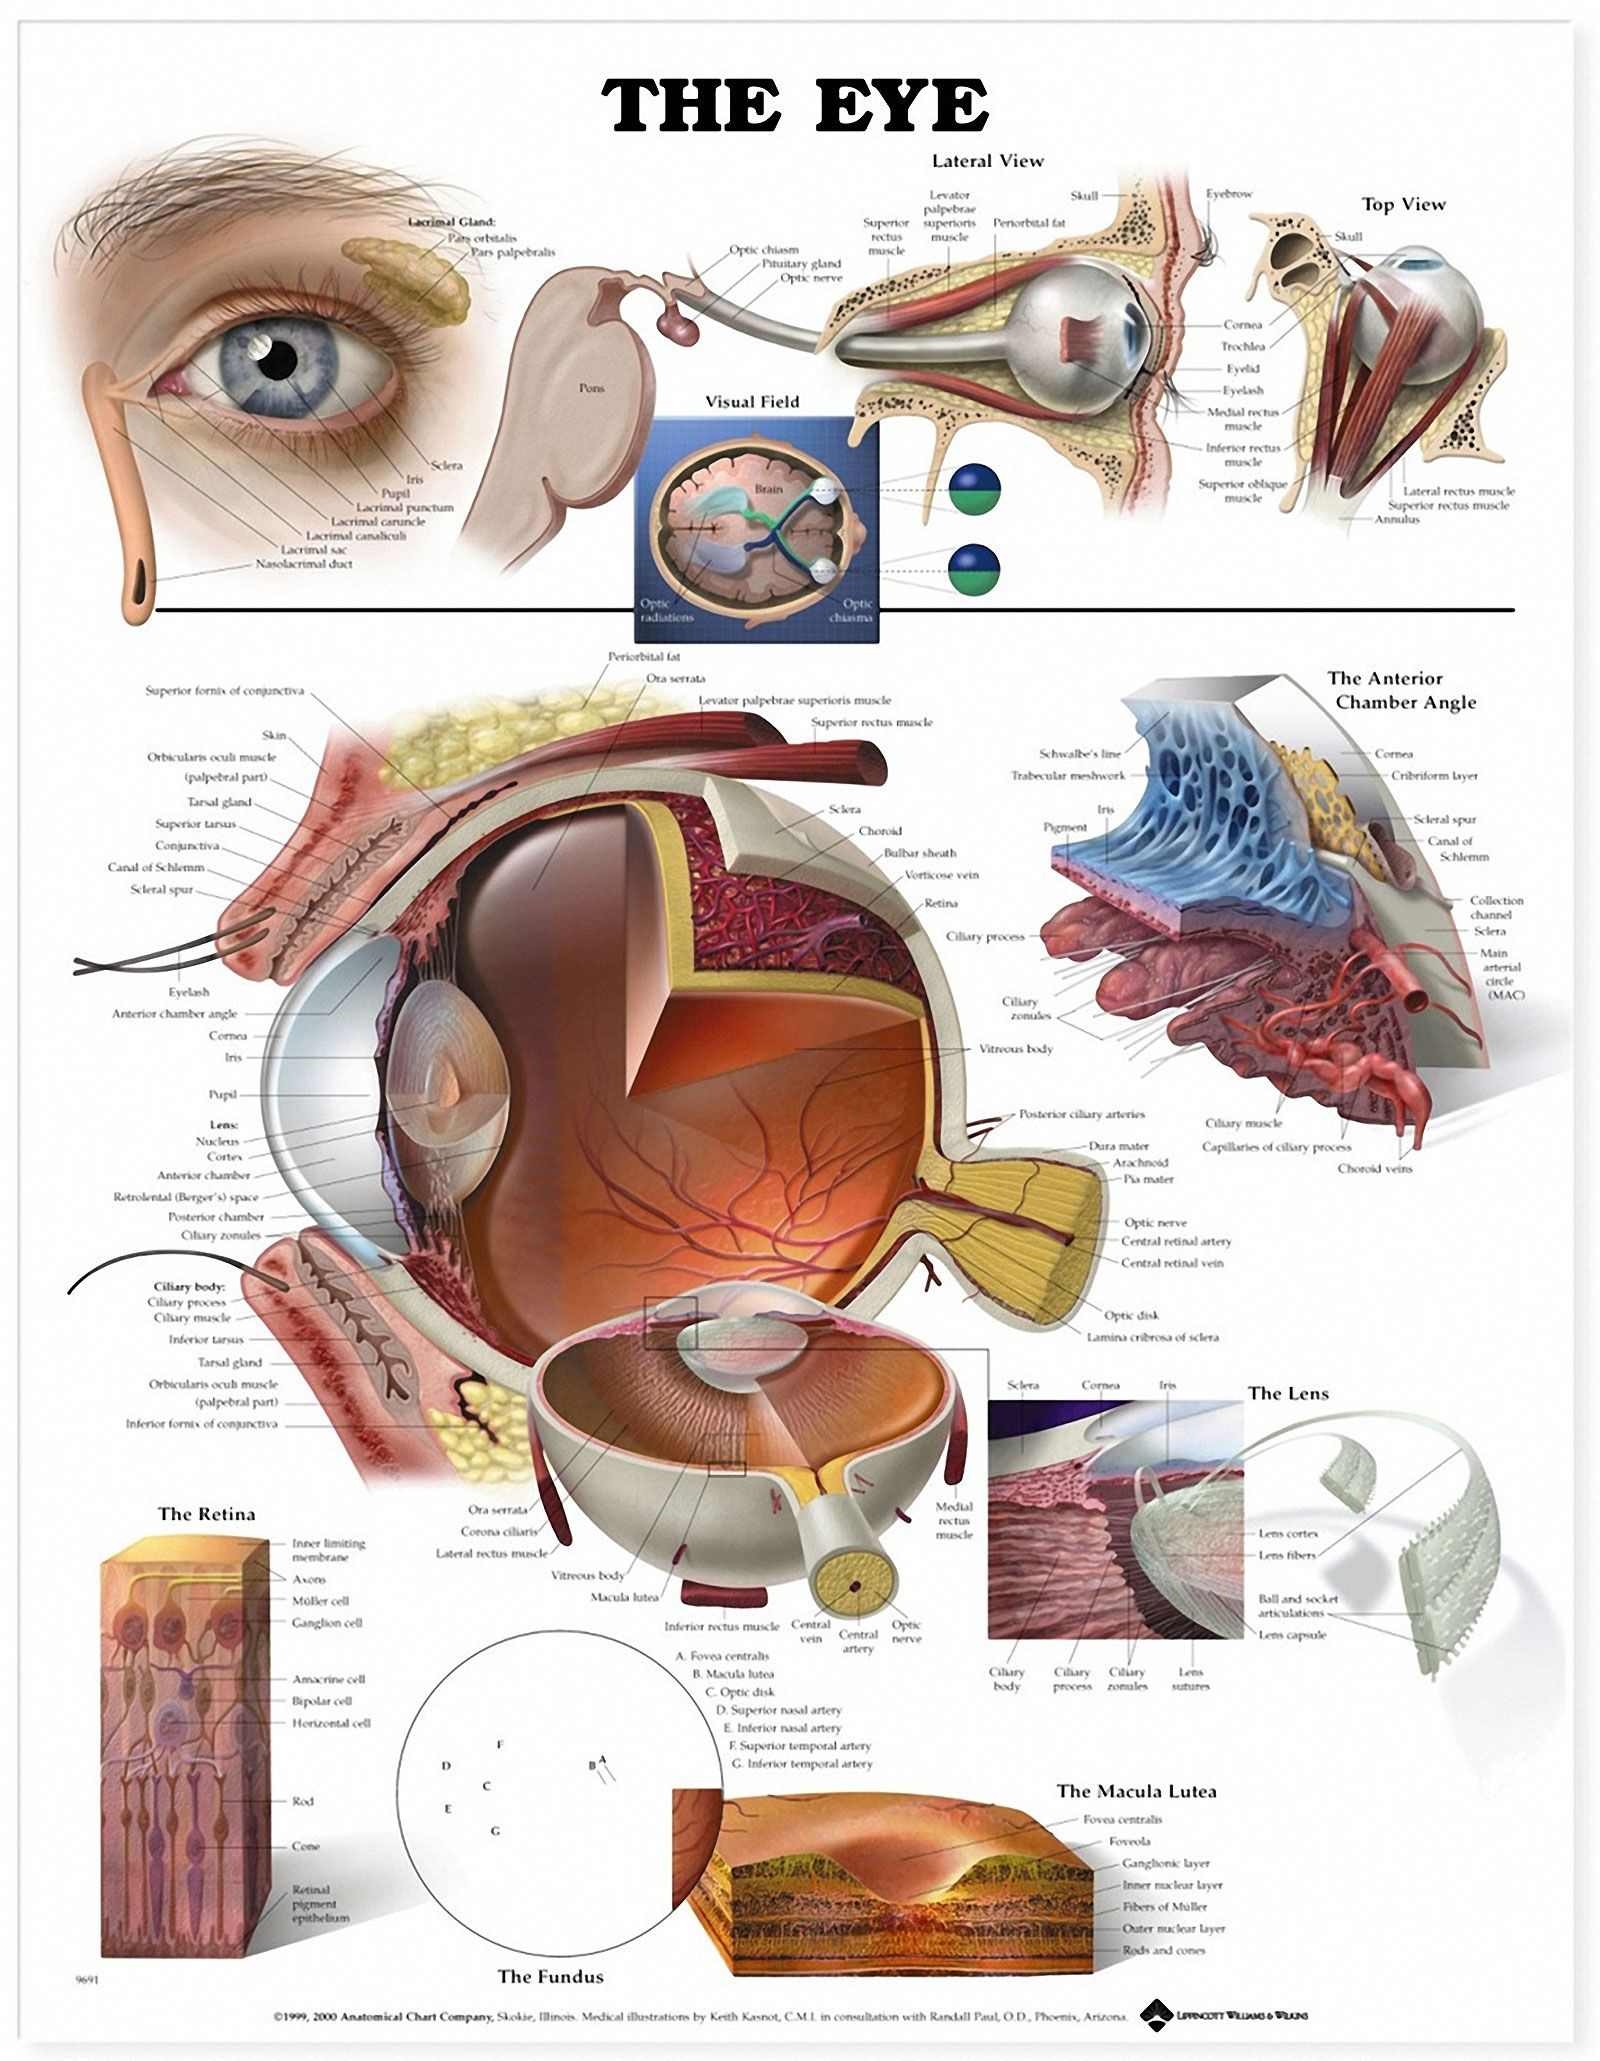 Eye Anatomical Chart | BPM Collections Health Opinions? | Pinterest ...